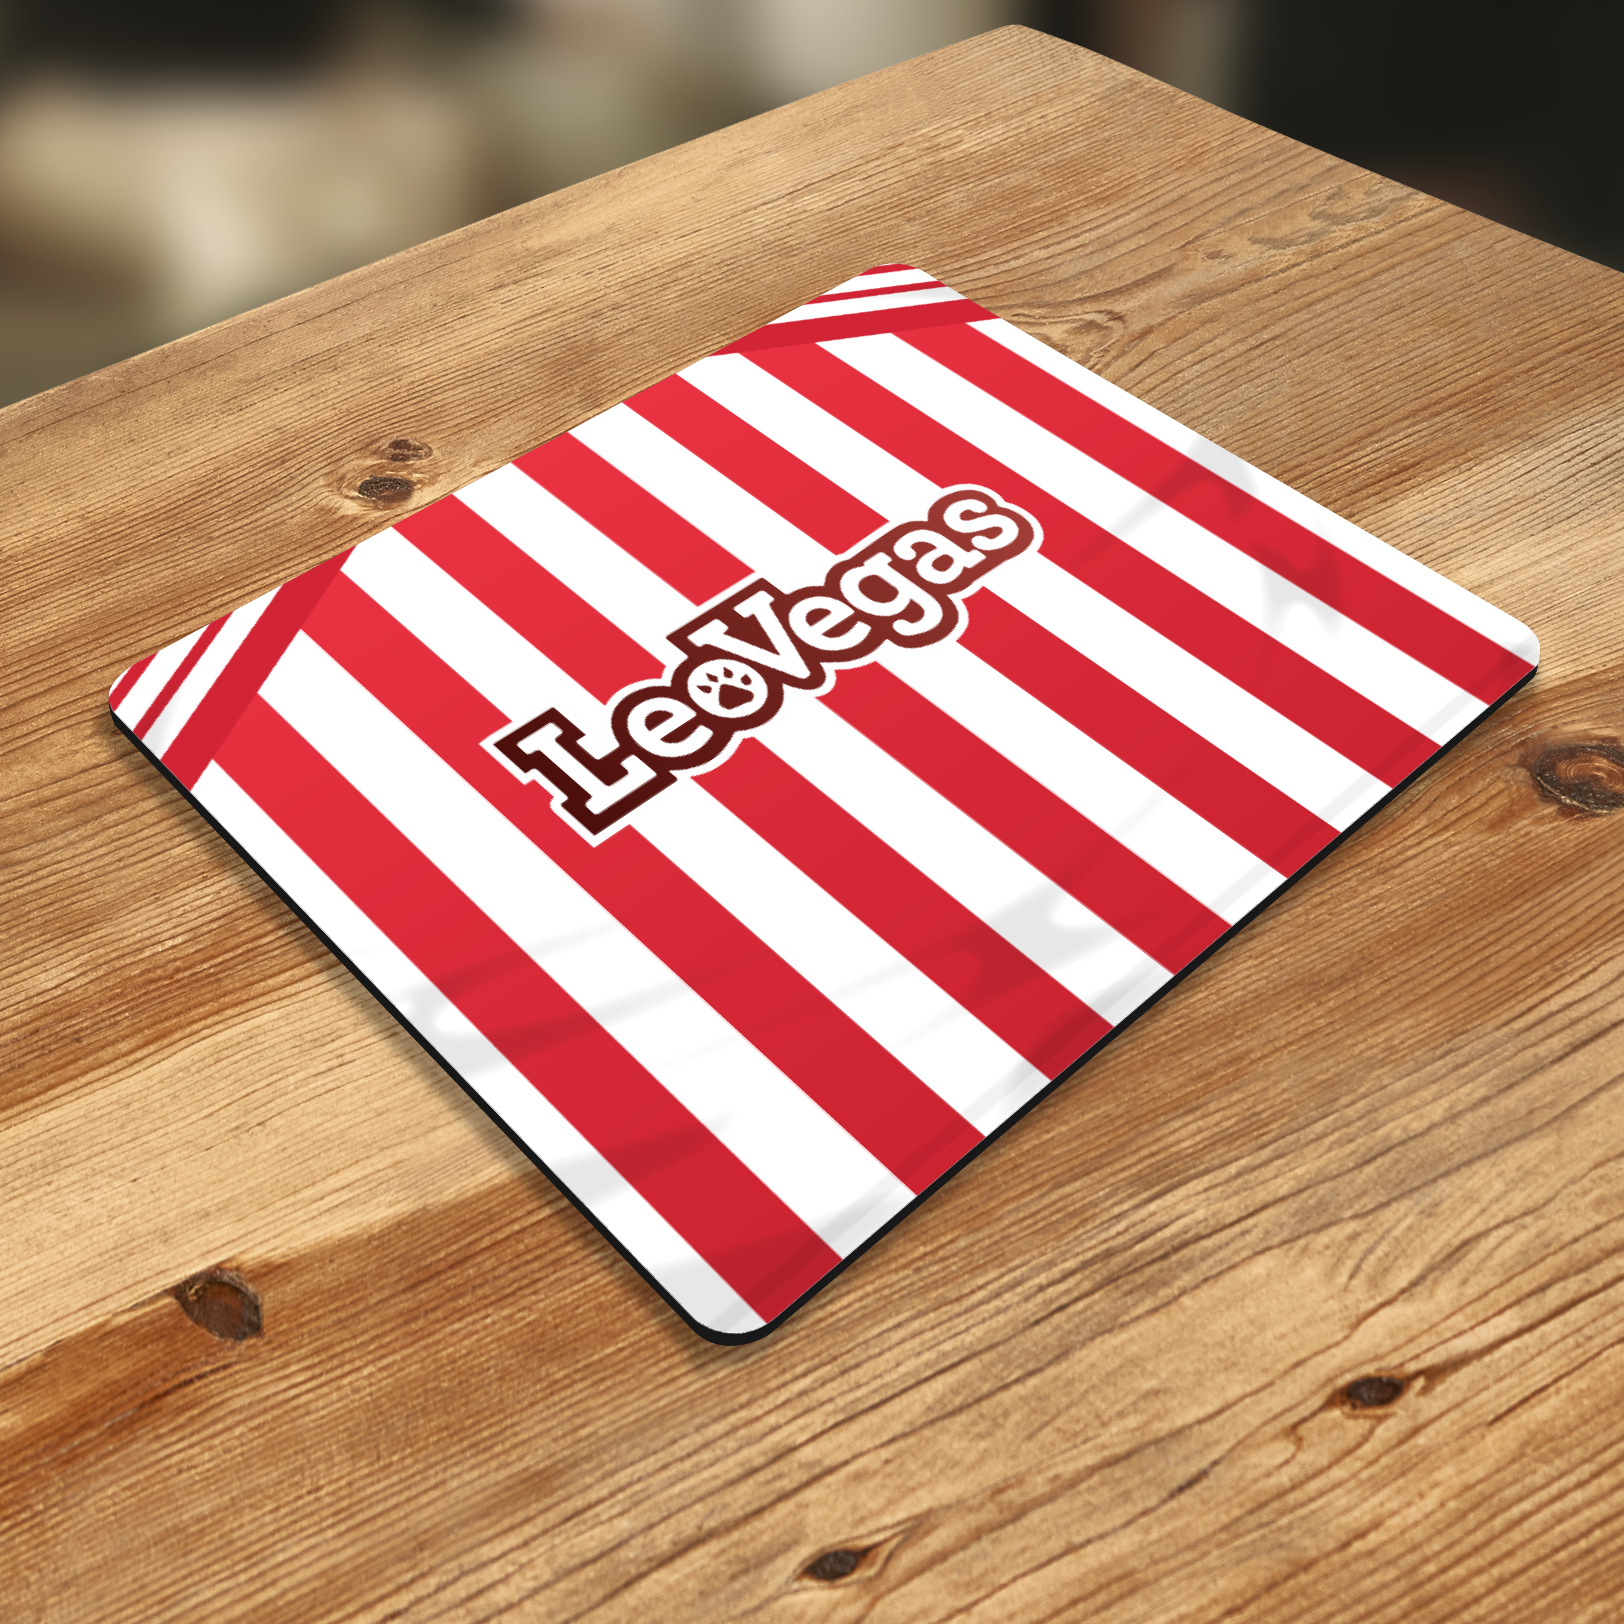 BRENTFORD INSPIRED MOUSE MAT 2018 HOME